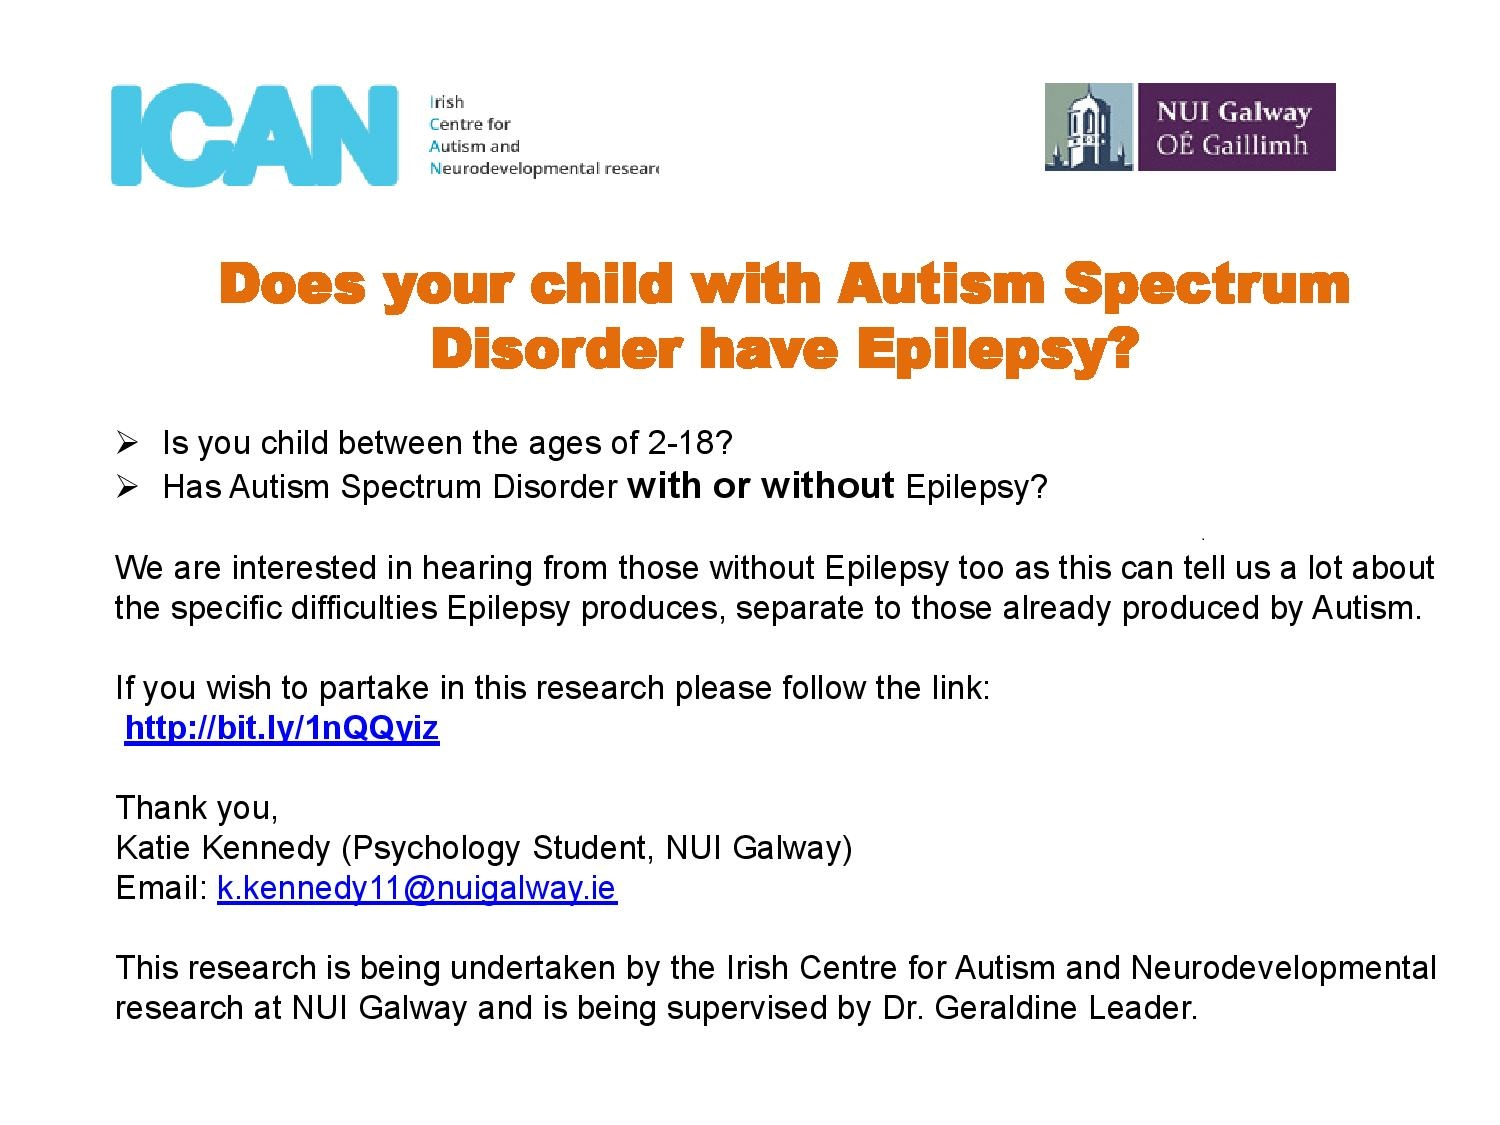 Epilepsy and Autism Research